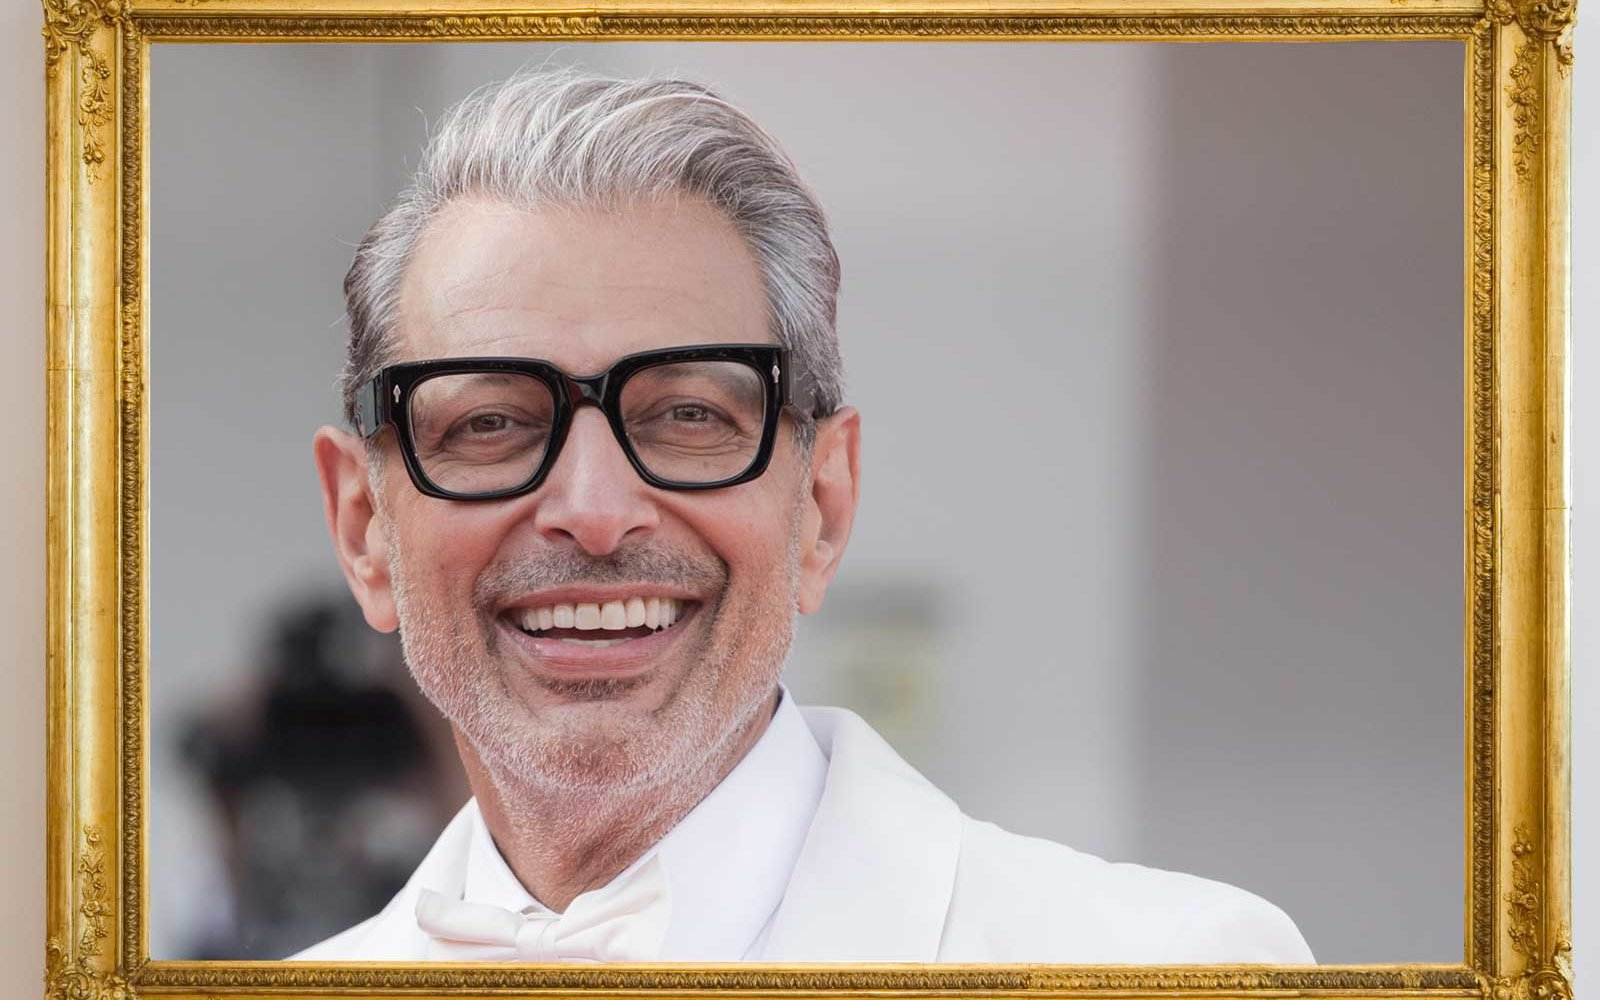 Jeff Goldblum in a gold frame